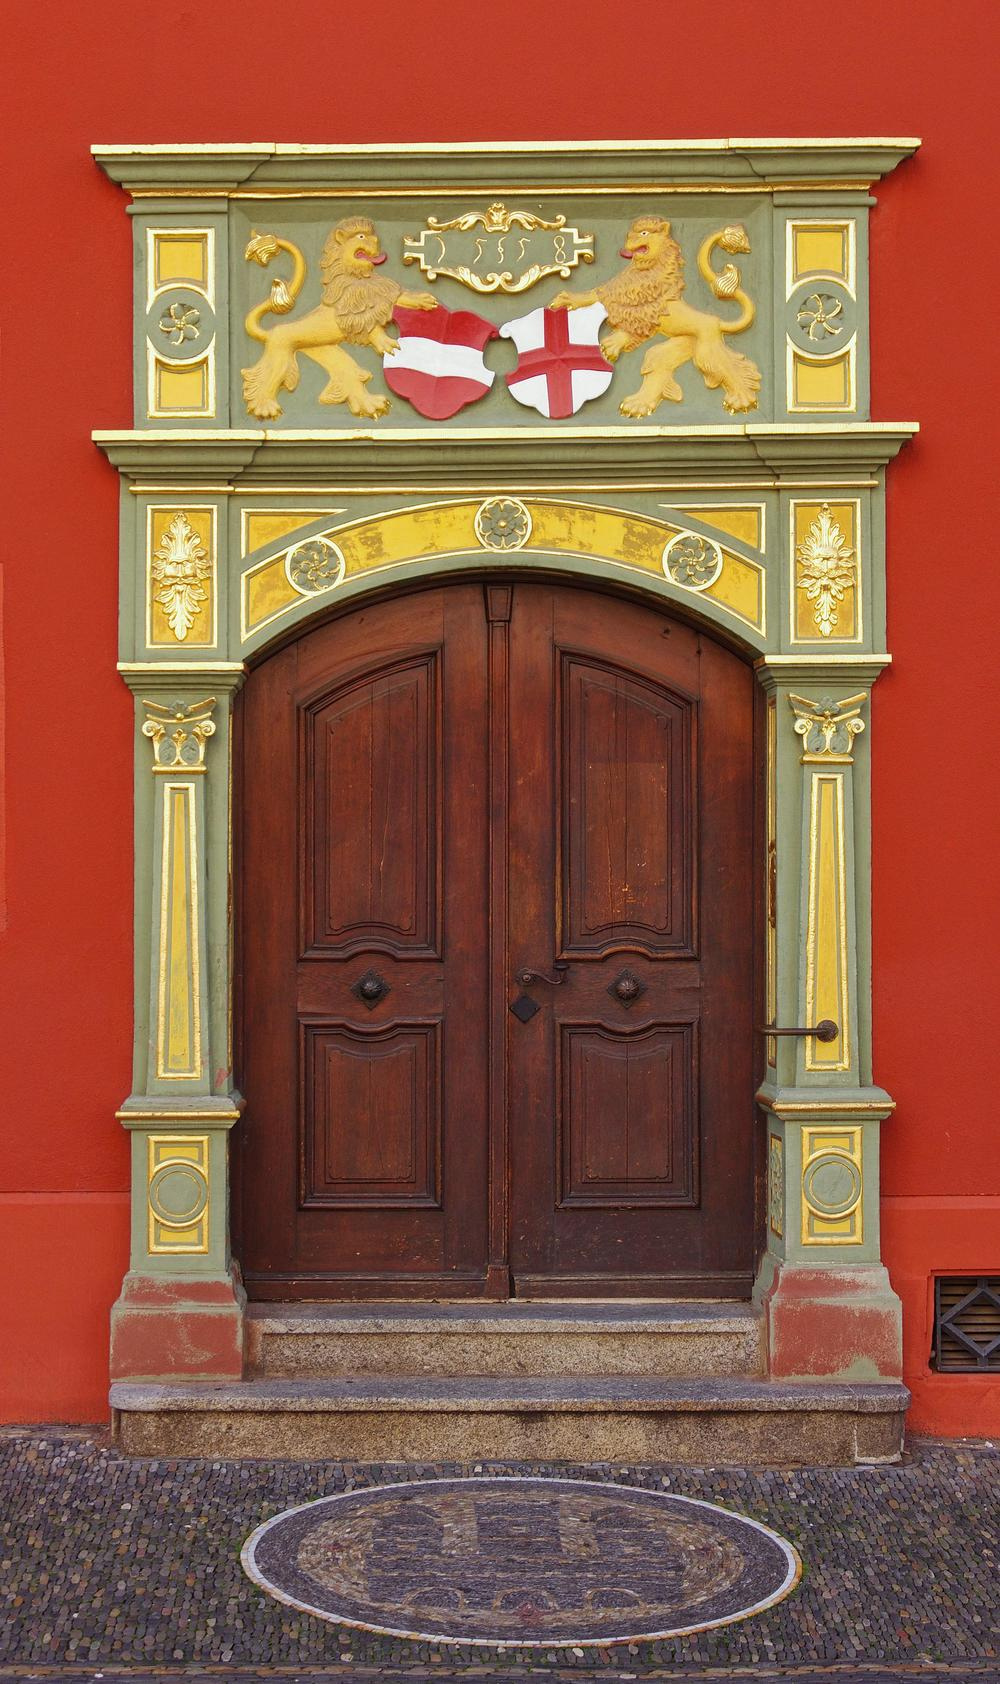 Door in old city hall building